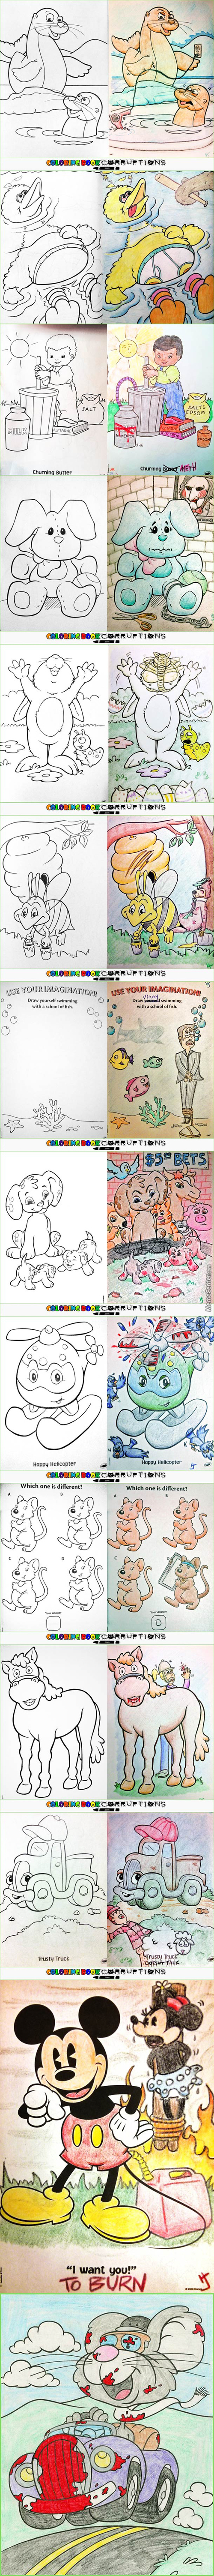 Coloring Book Corruptions ( New Compilation)